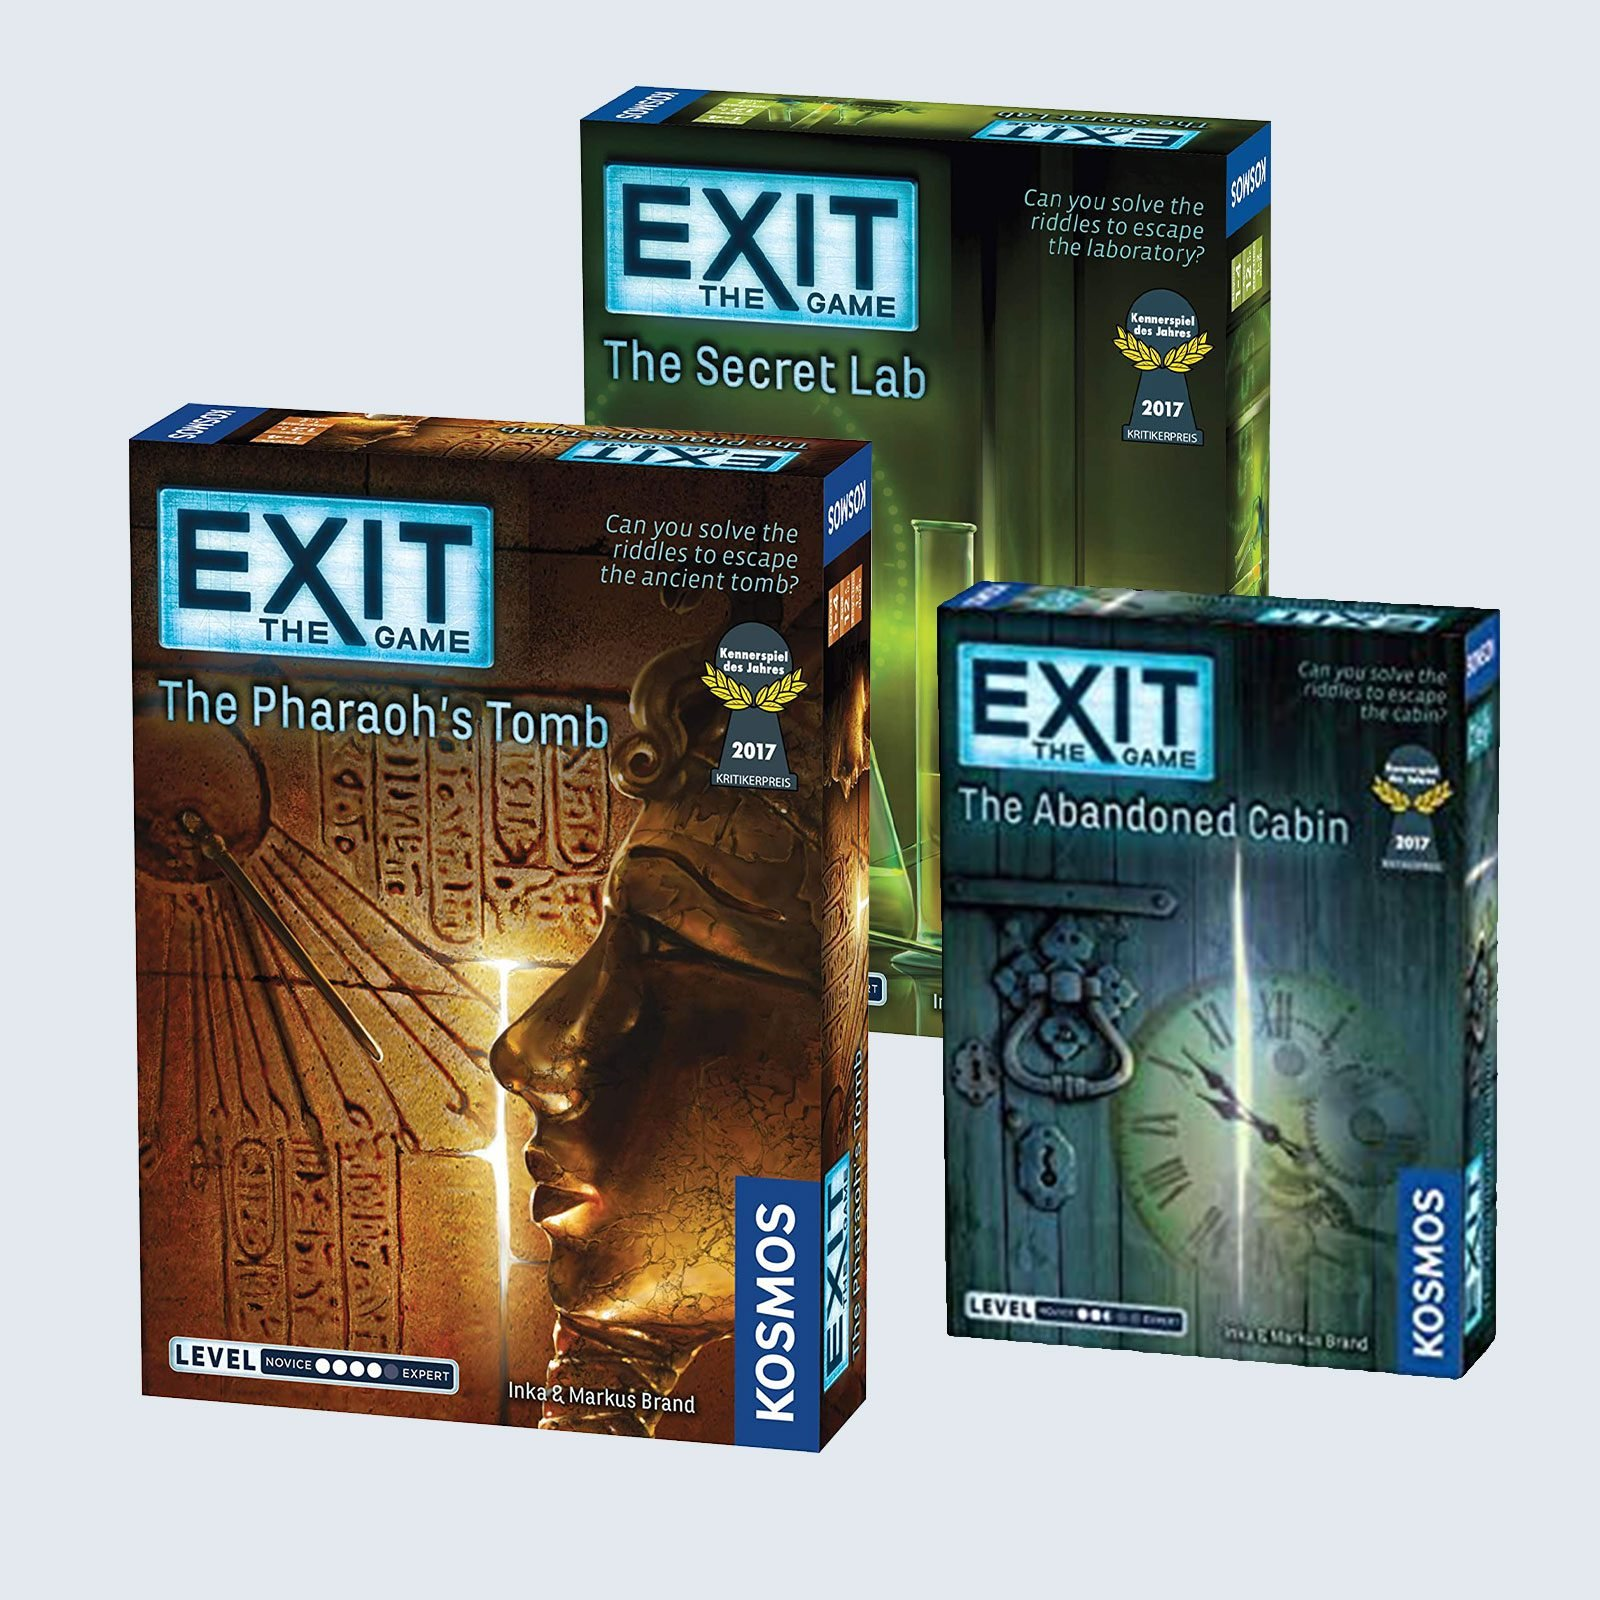 Exit: The Game—The Abandoned Cabin / The Pharaoh's Tomb / The Secret Lab